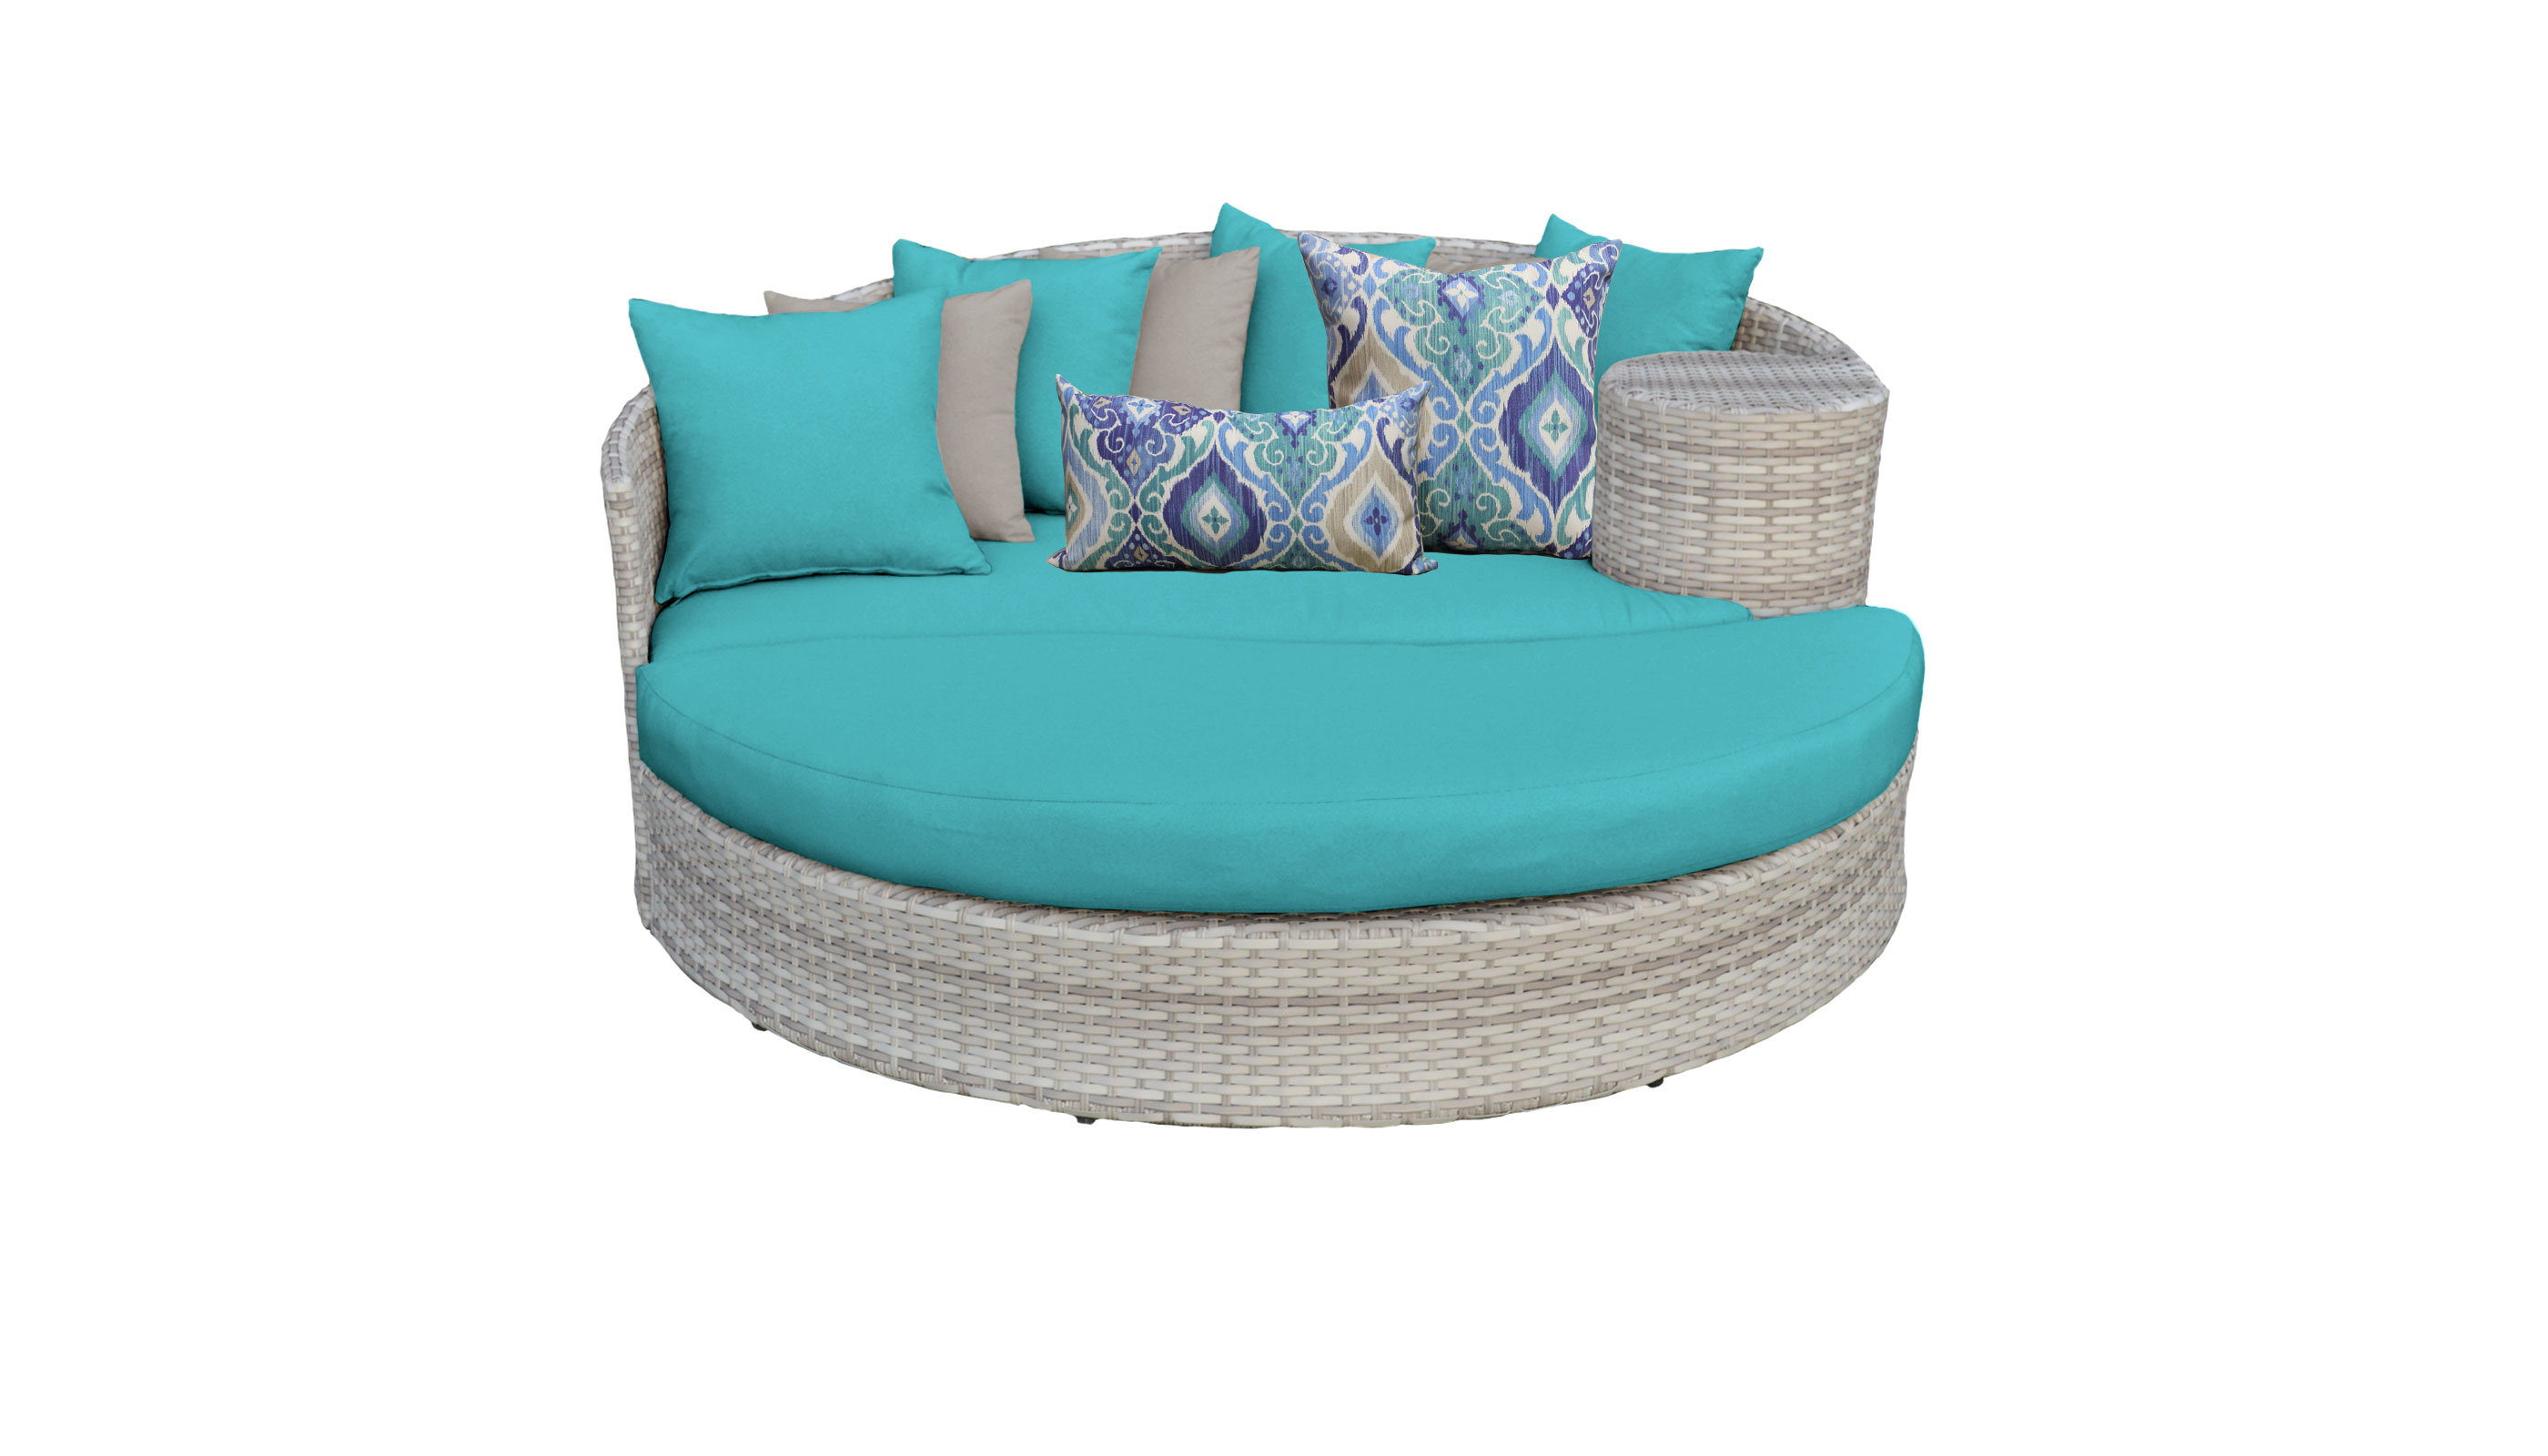 Preferred Falmouth Patio Daybeds With Cushions With Falmouth Patio Daybed With Cushions (View 2 of 20)